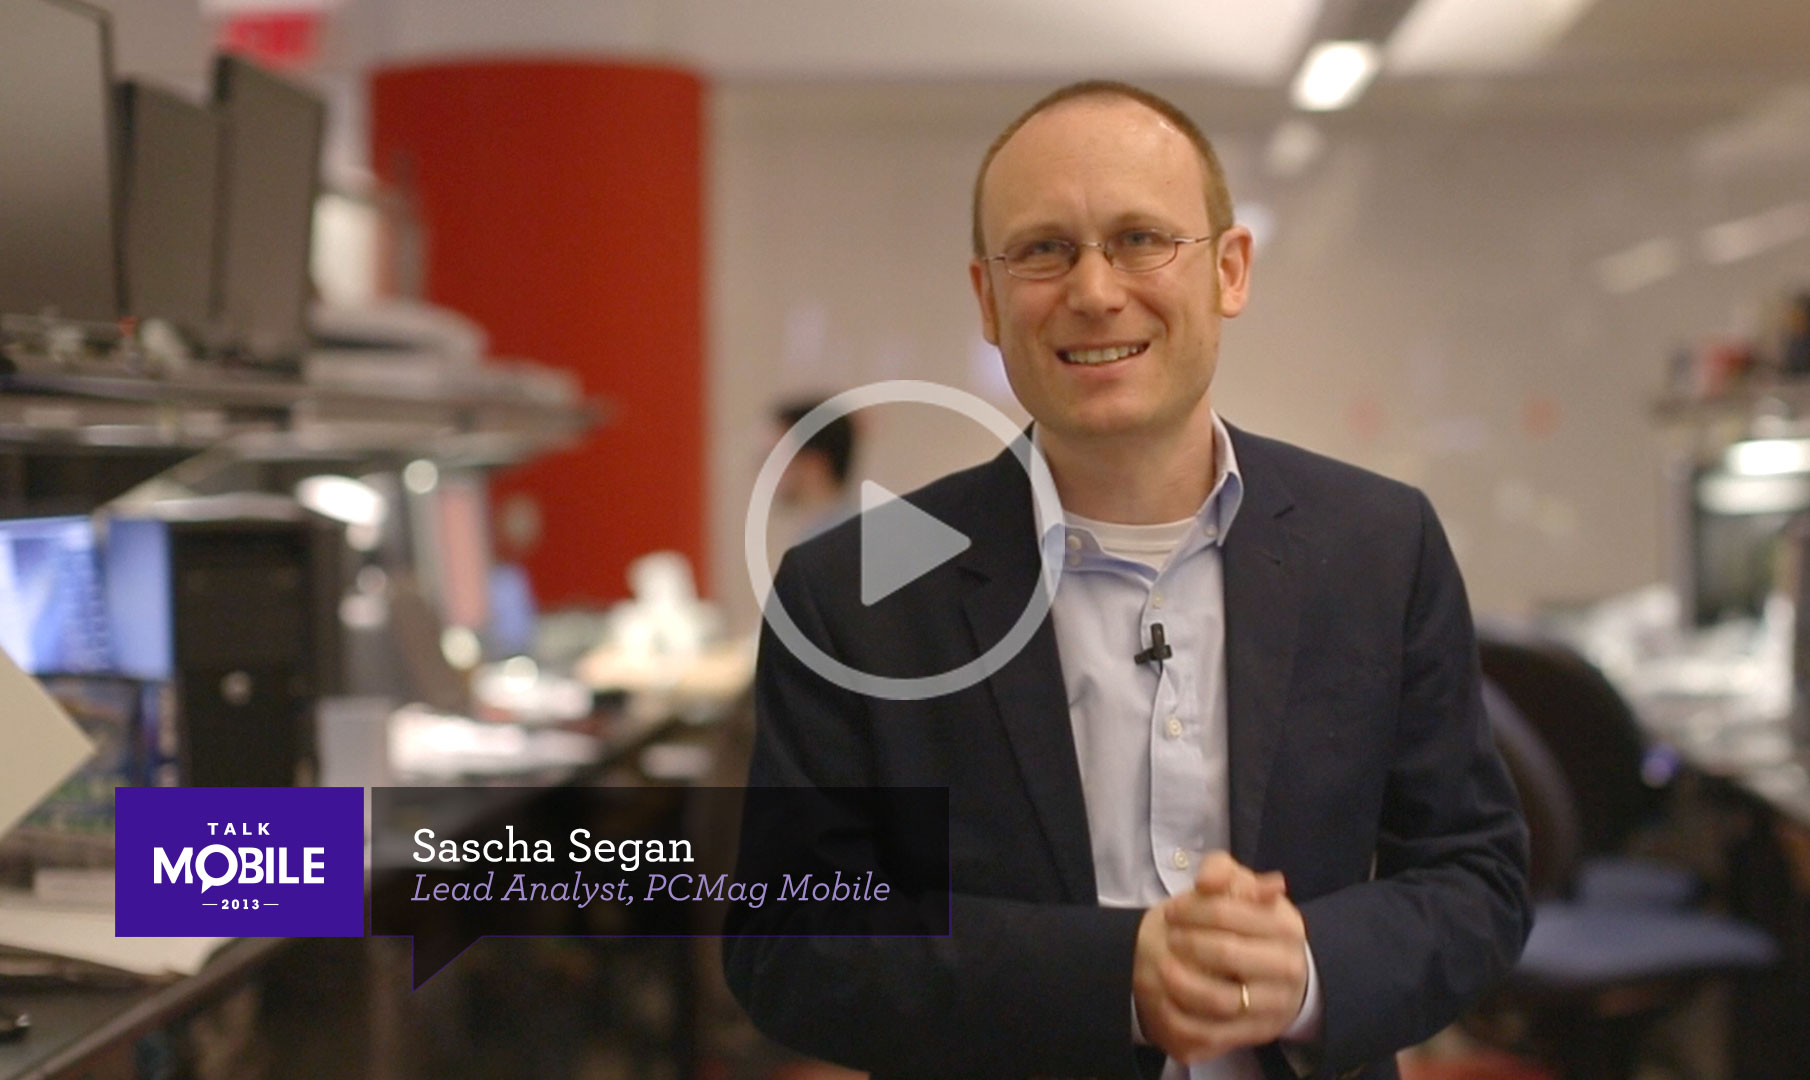 Watch Sascha Segan talk about screen sizes.